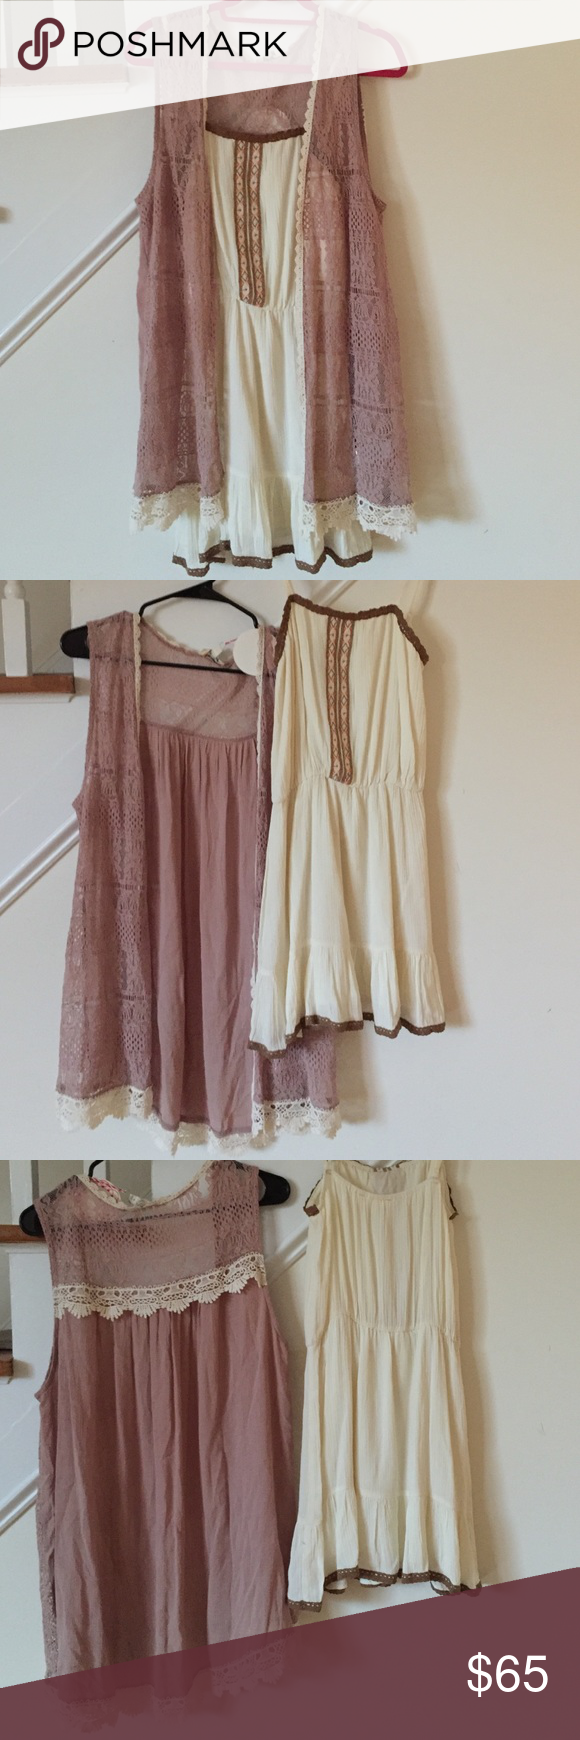 """Dress & Vest Outfit sale 🎀 Buy the outfit! Gorgeous BoHo chic dress and a vest combination. 💕Never wore either. Vest  is a gorgeous Mocha with Ivory lace dear long and crochet trim detail. Length 31"""". NWT. Stunning! 60% cotton and 40% polyester. The dress is beautiful cream color with gorgeous crochet trim along top and bottom. Lined. Ruffle hem. Spaghetti adjustable straps. Bust is about 14.5"""" and length from top of bust 26"""". NWOT 🎀 both are a size small. Layer it up. Pair with…"""